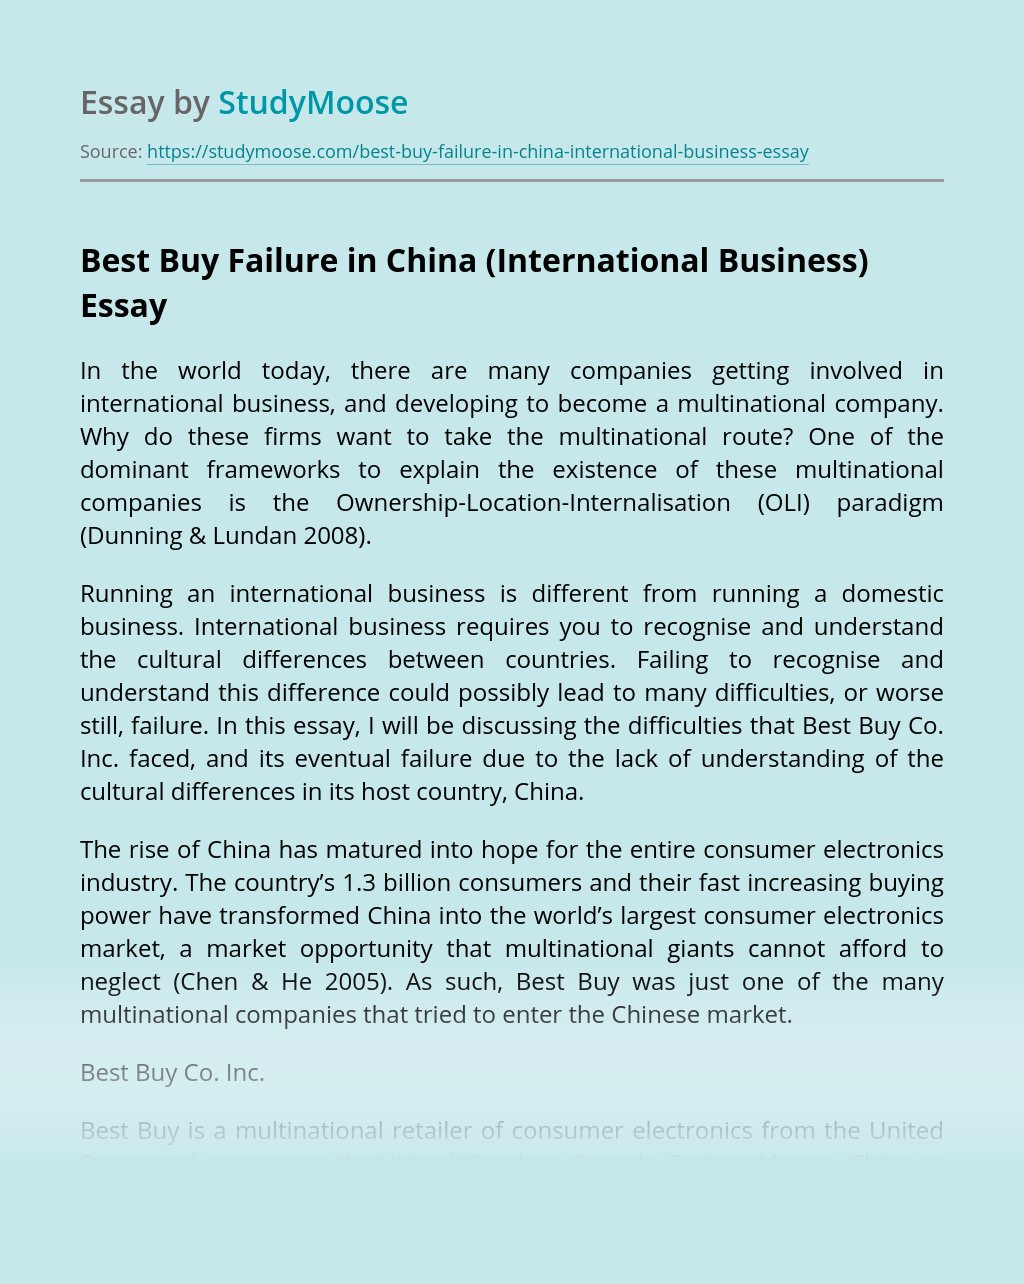 Best Buy Failure in China (International Business)